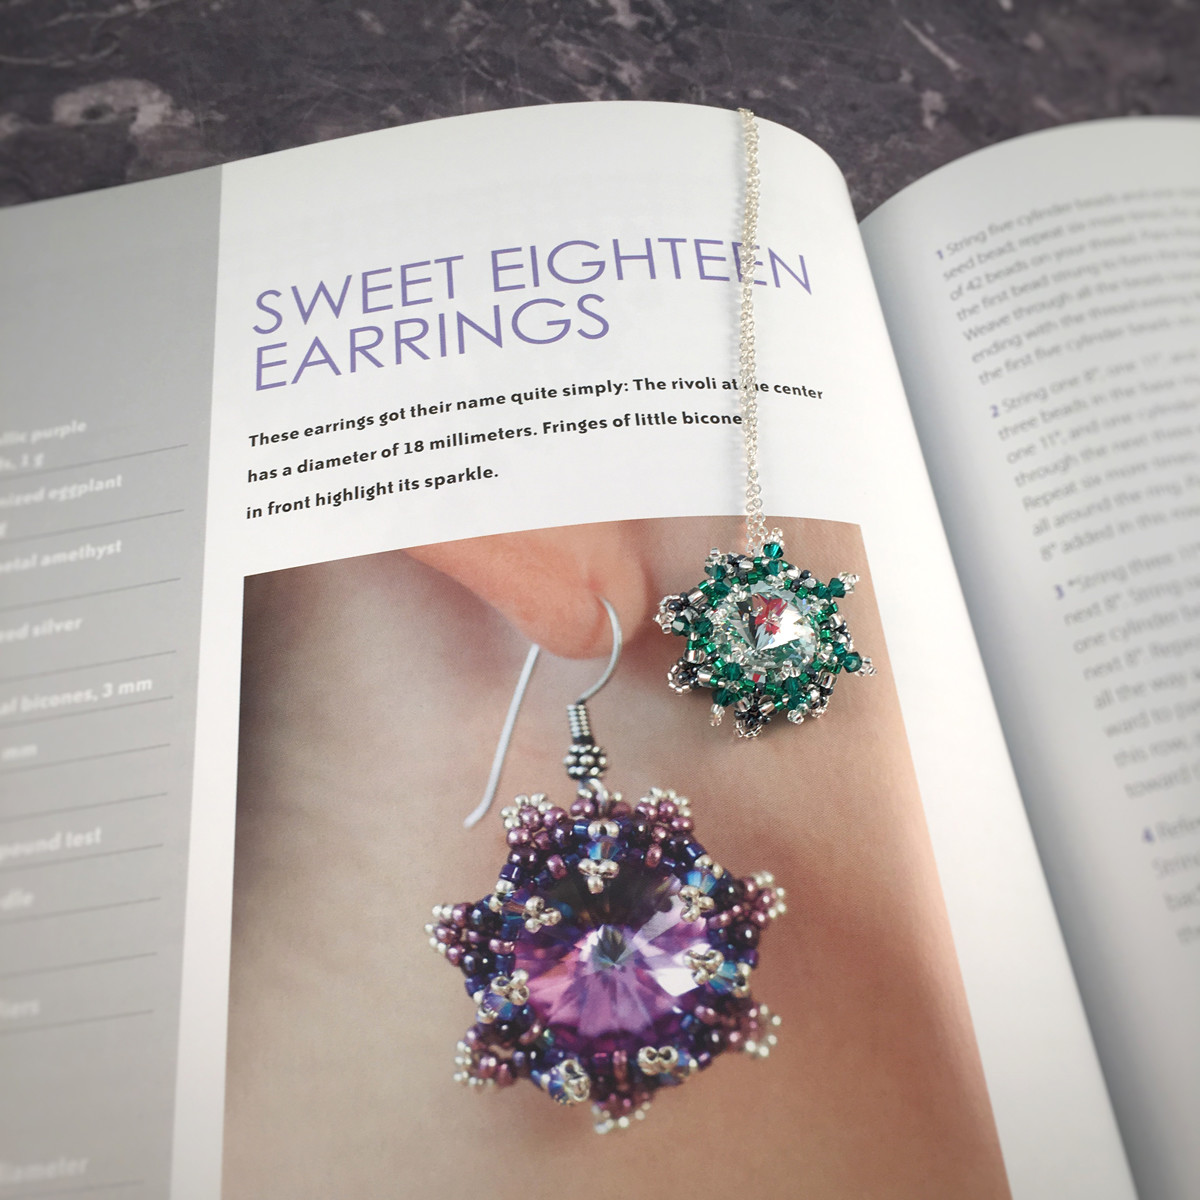 sabine lipperts beaded fantasies - sweet eighteen earrings and pendant